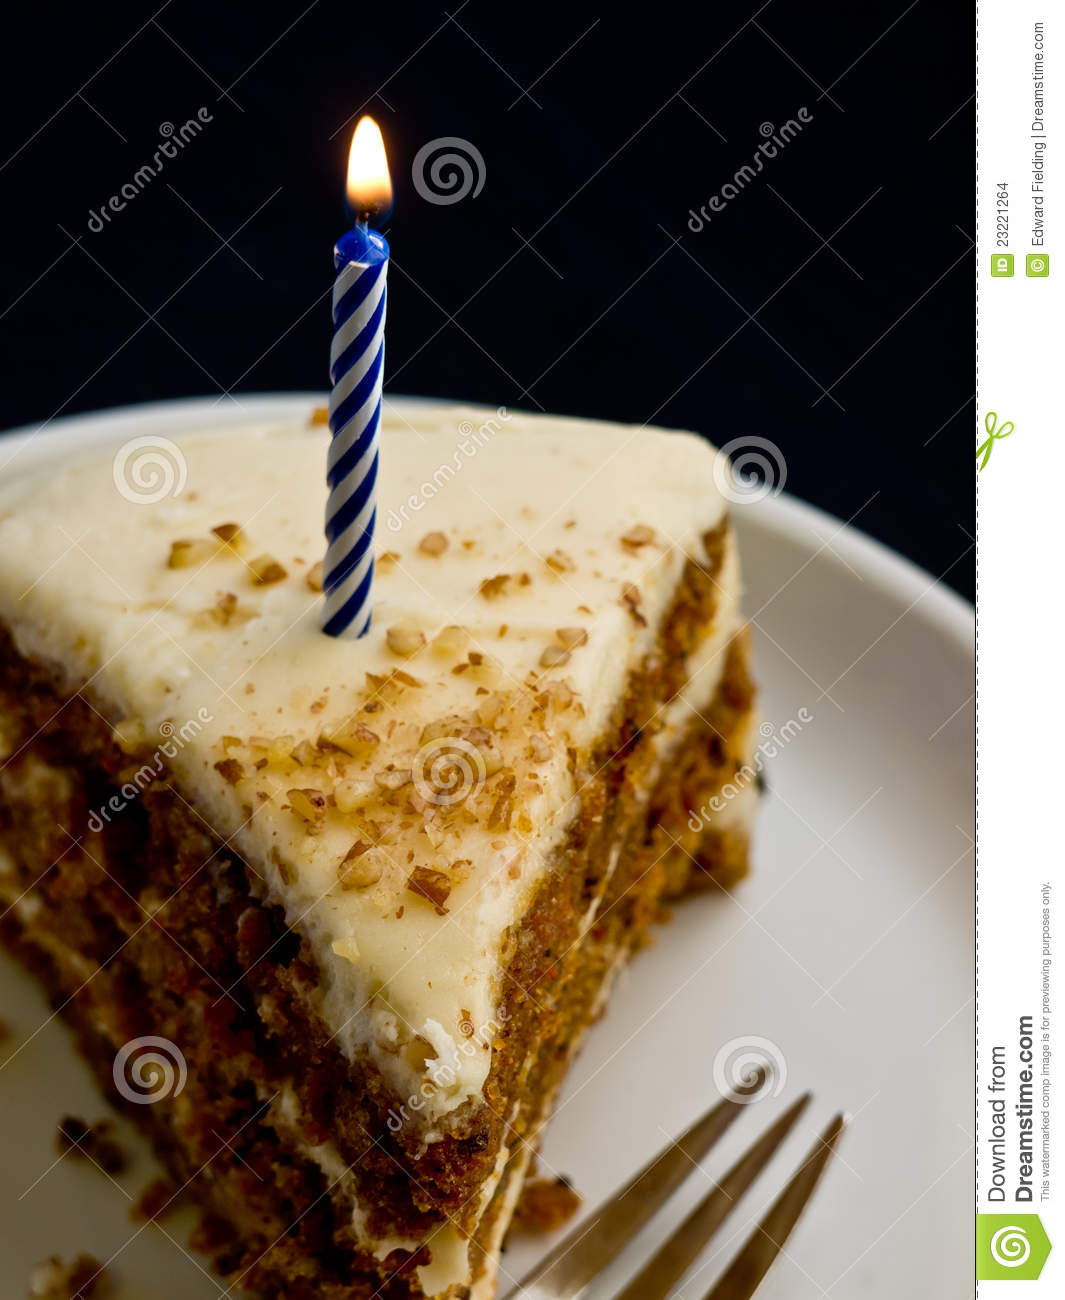 Happy Birthday Cake Candle Stock Photo Image Of Burning Alone